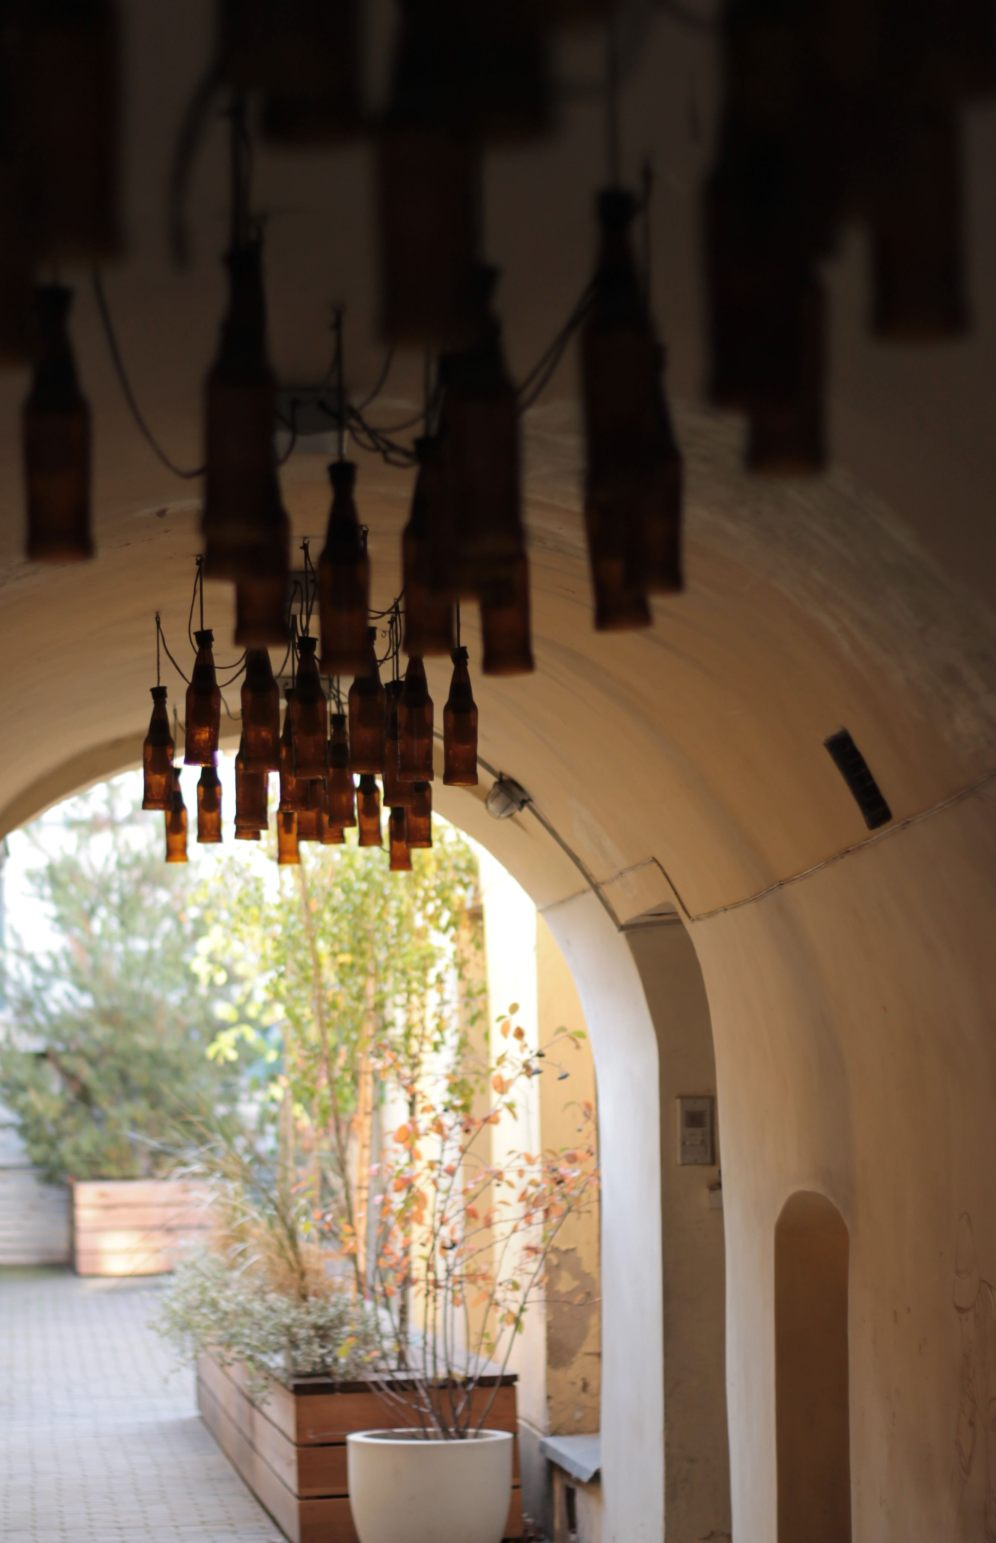 Bottles hanging from a ceiling - why not?